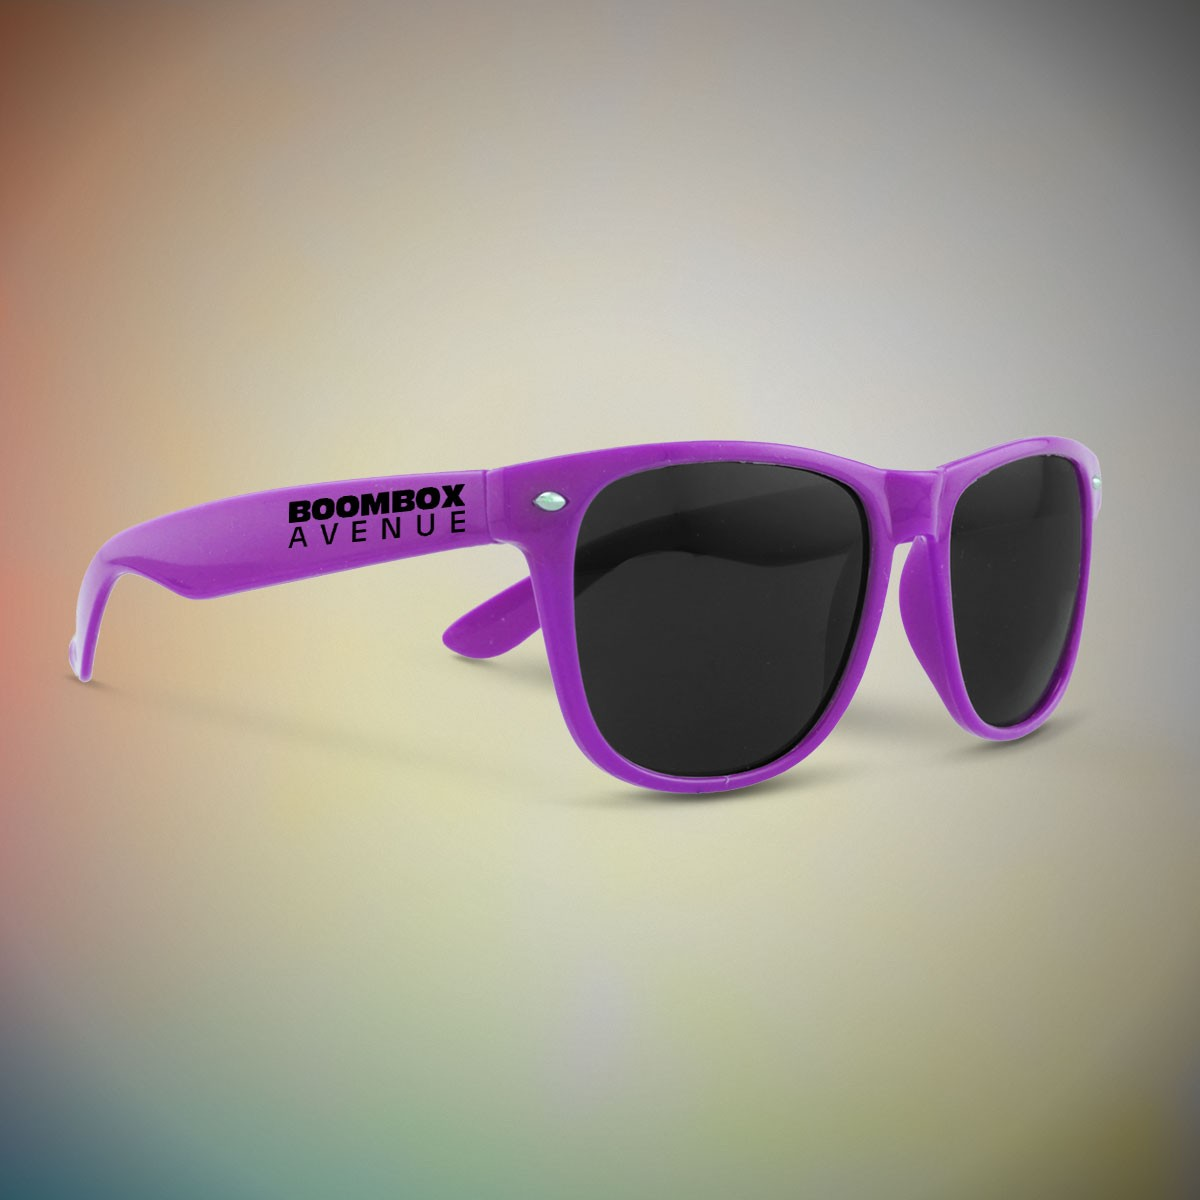 PURPLE FRAME RETRO SUNGLASSES